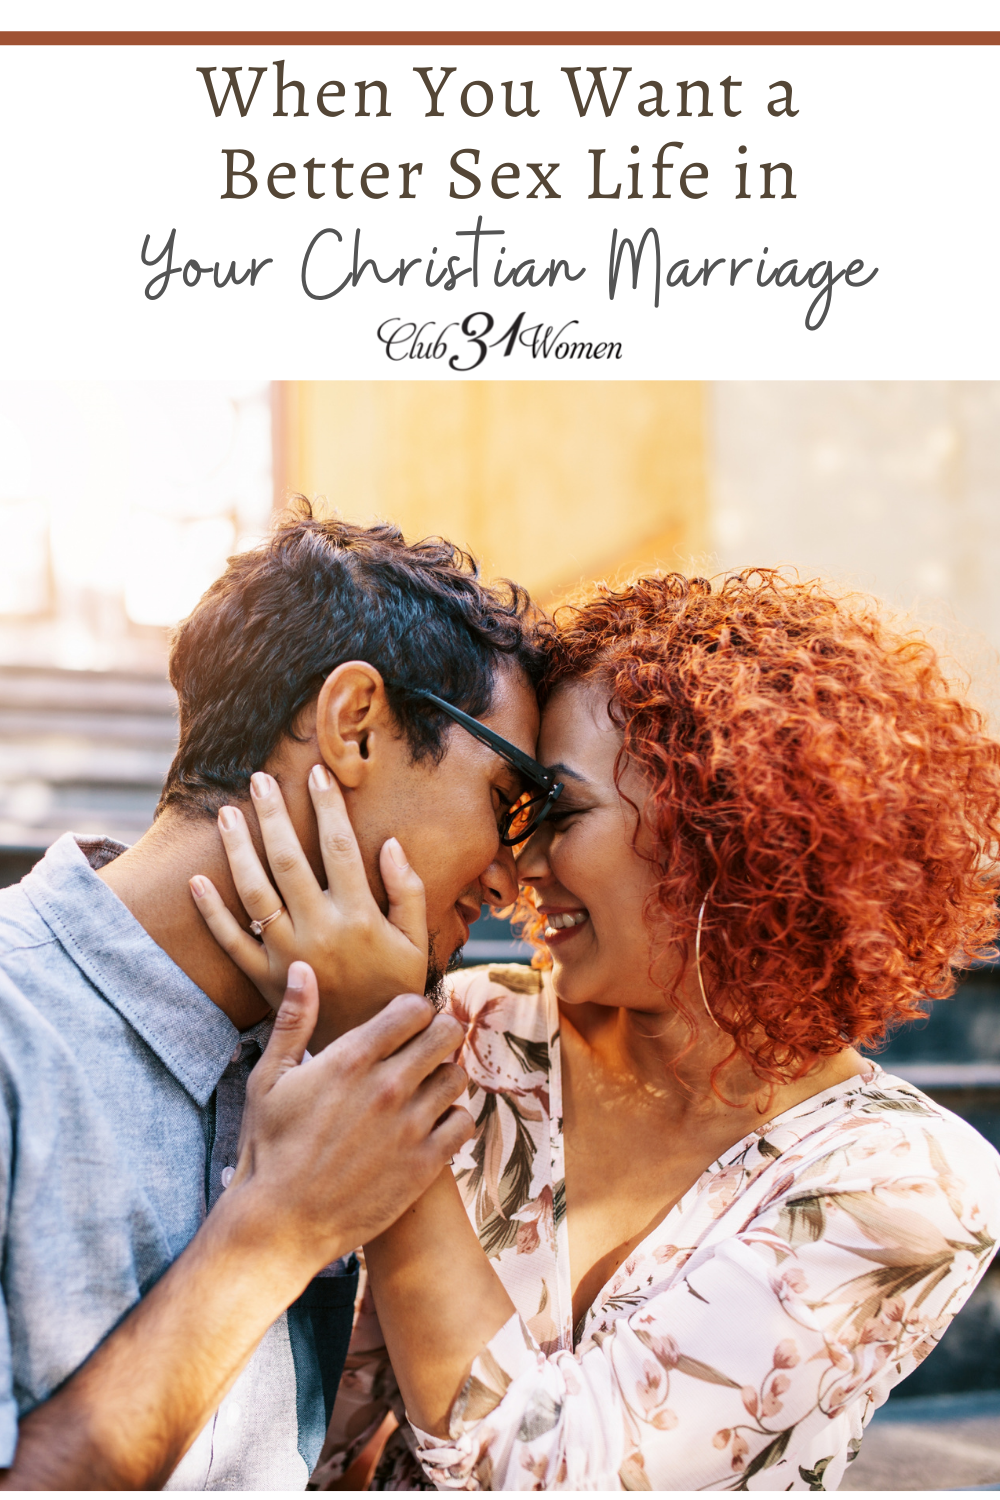 Sex plays such a powerful role in marriage. Here both a husband and wife share how to enjoy a closer and better sexual relationship. via @Club31Women